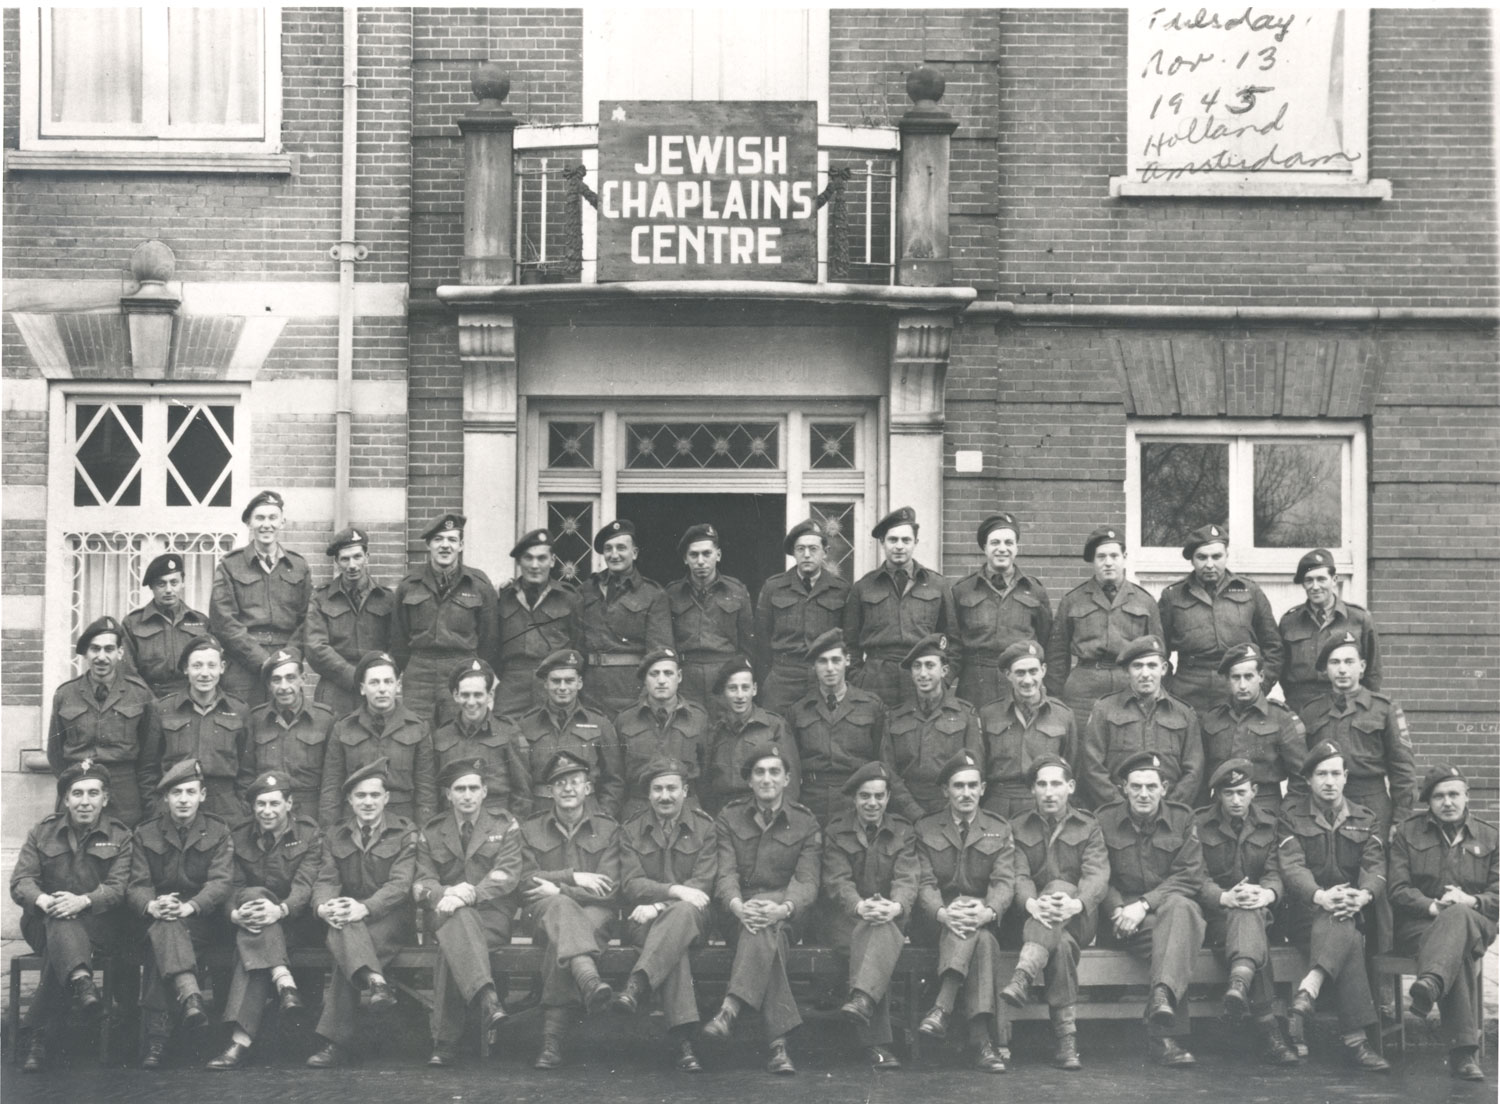 Troops outside the Jewish Chaplains Centre in Amsterdam